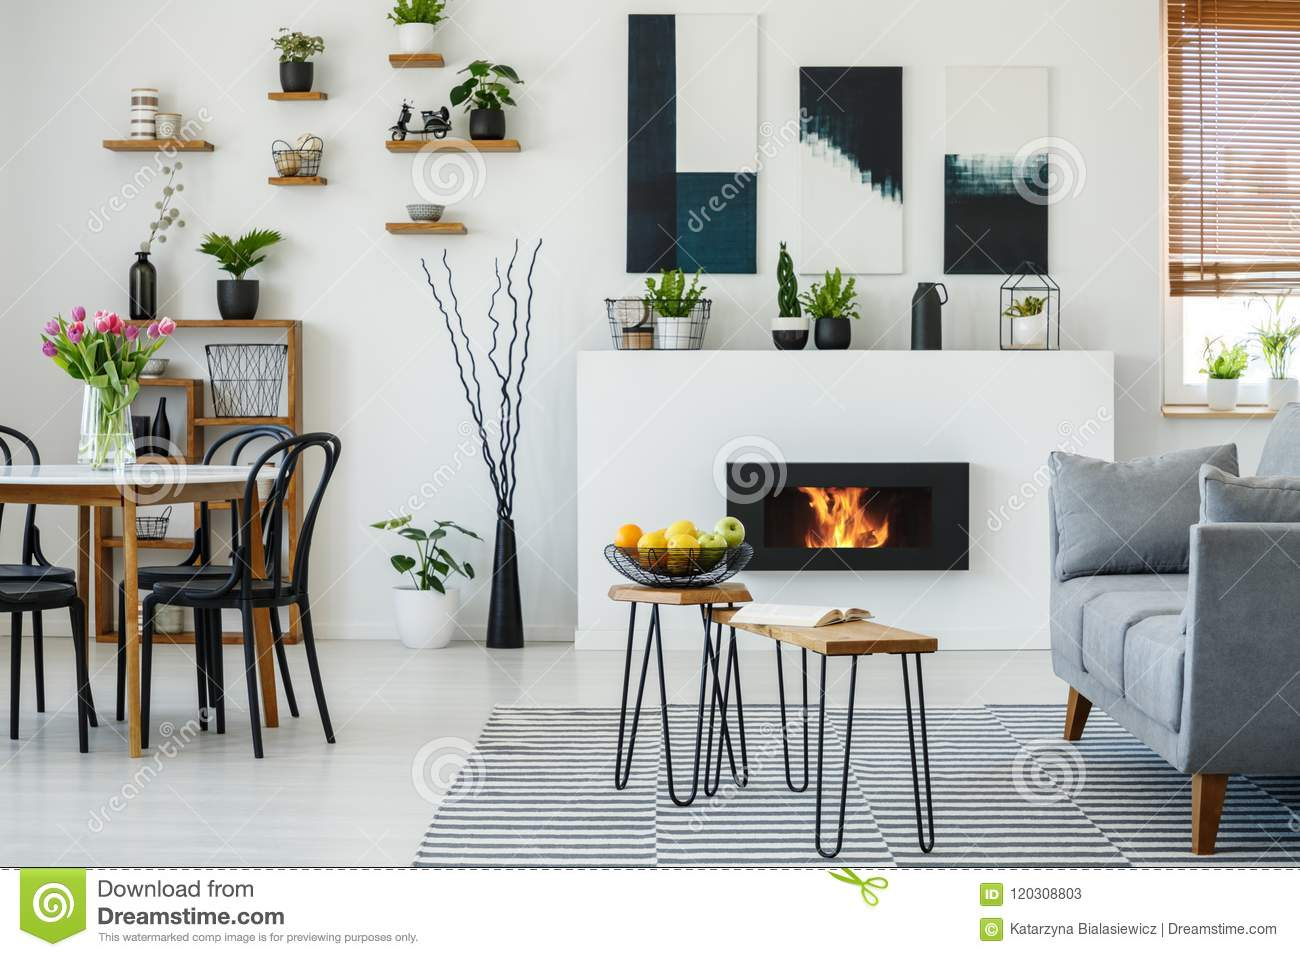 Black Chairs At Dining Table With Flowers In Flat Interior Grey Sofa Next To Fireplace Real Photo